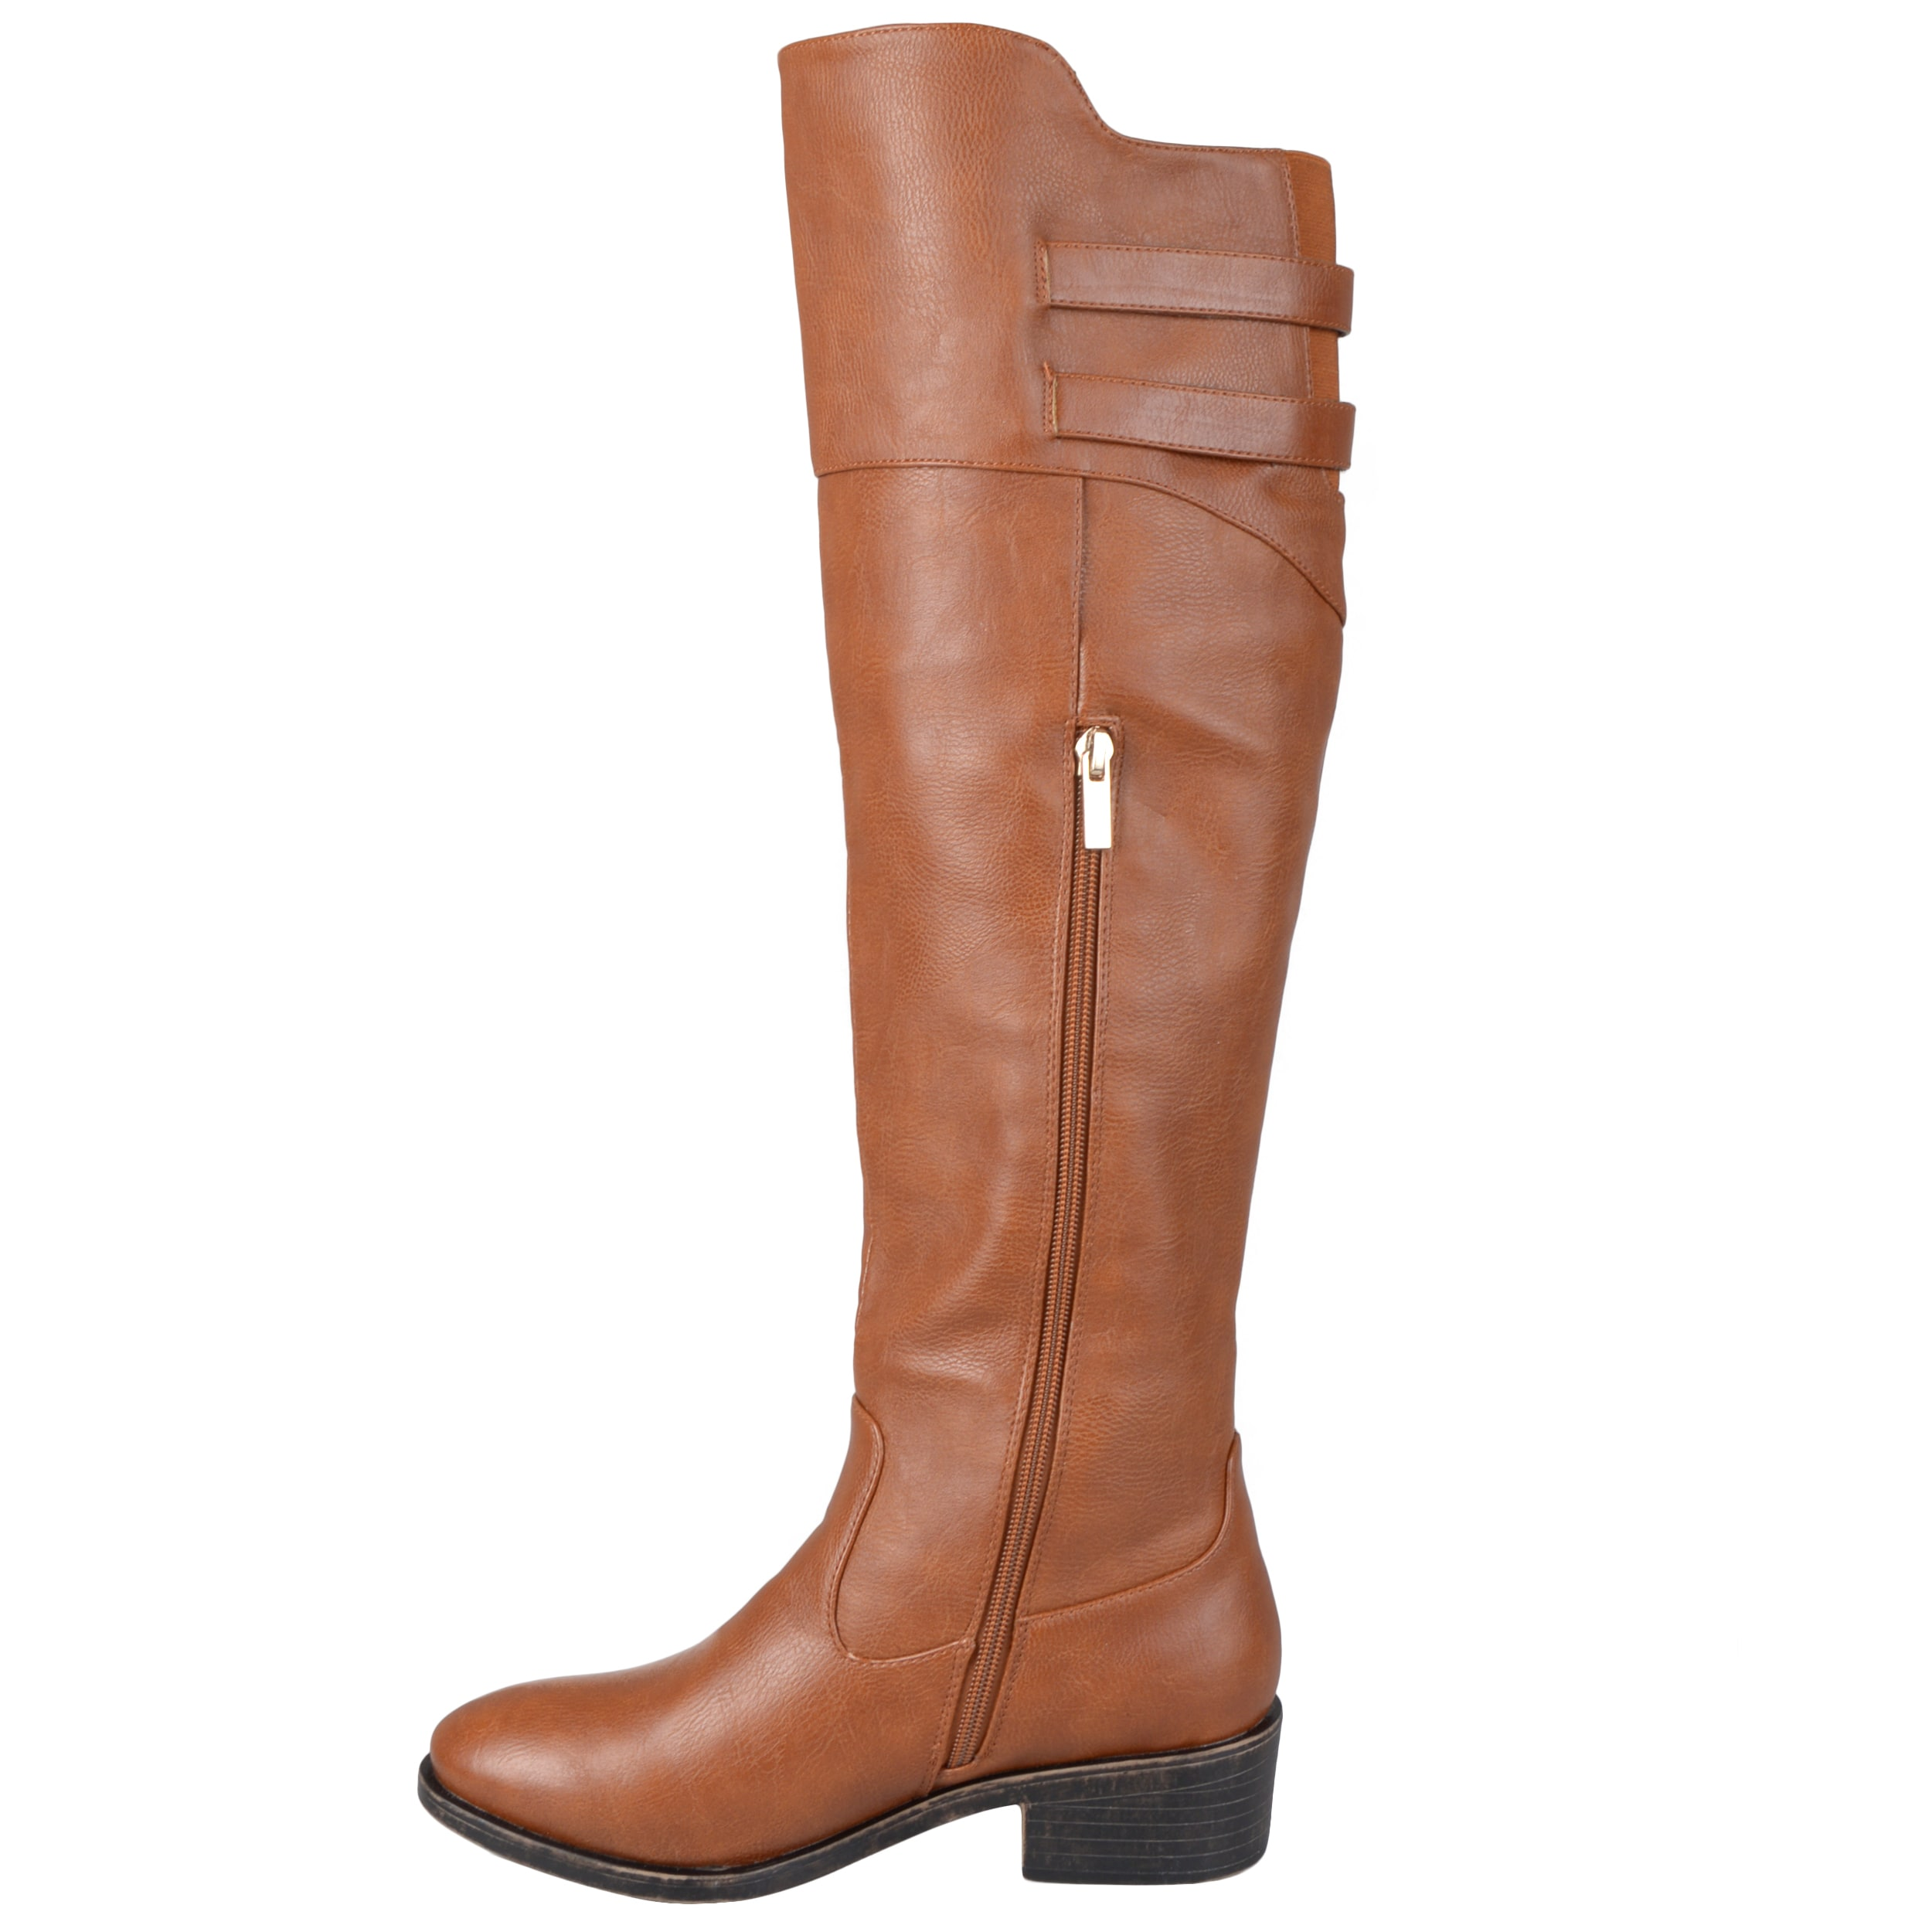 Journee Collection Women's 'Chloe' Regular and Wide-calf Button Detail Knee-high  Riding Boot - Free Shipping On Orders Over $45 - Overstock.com - 16542029